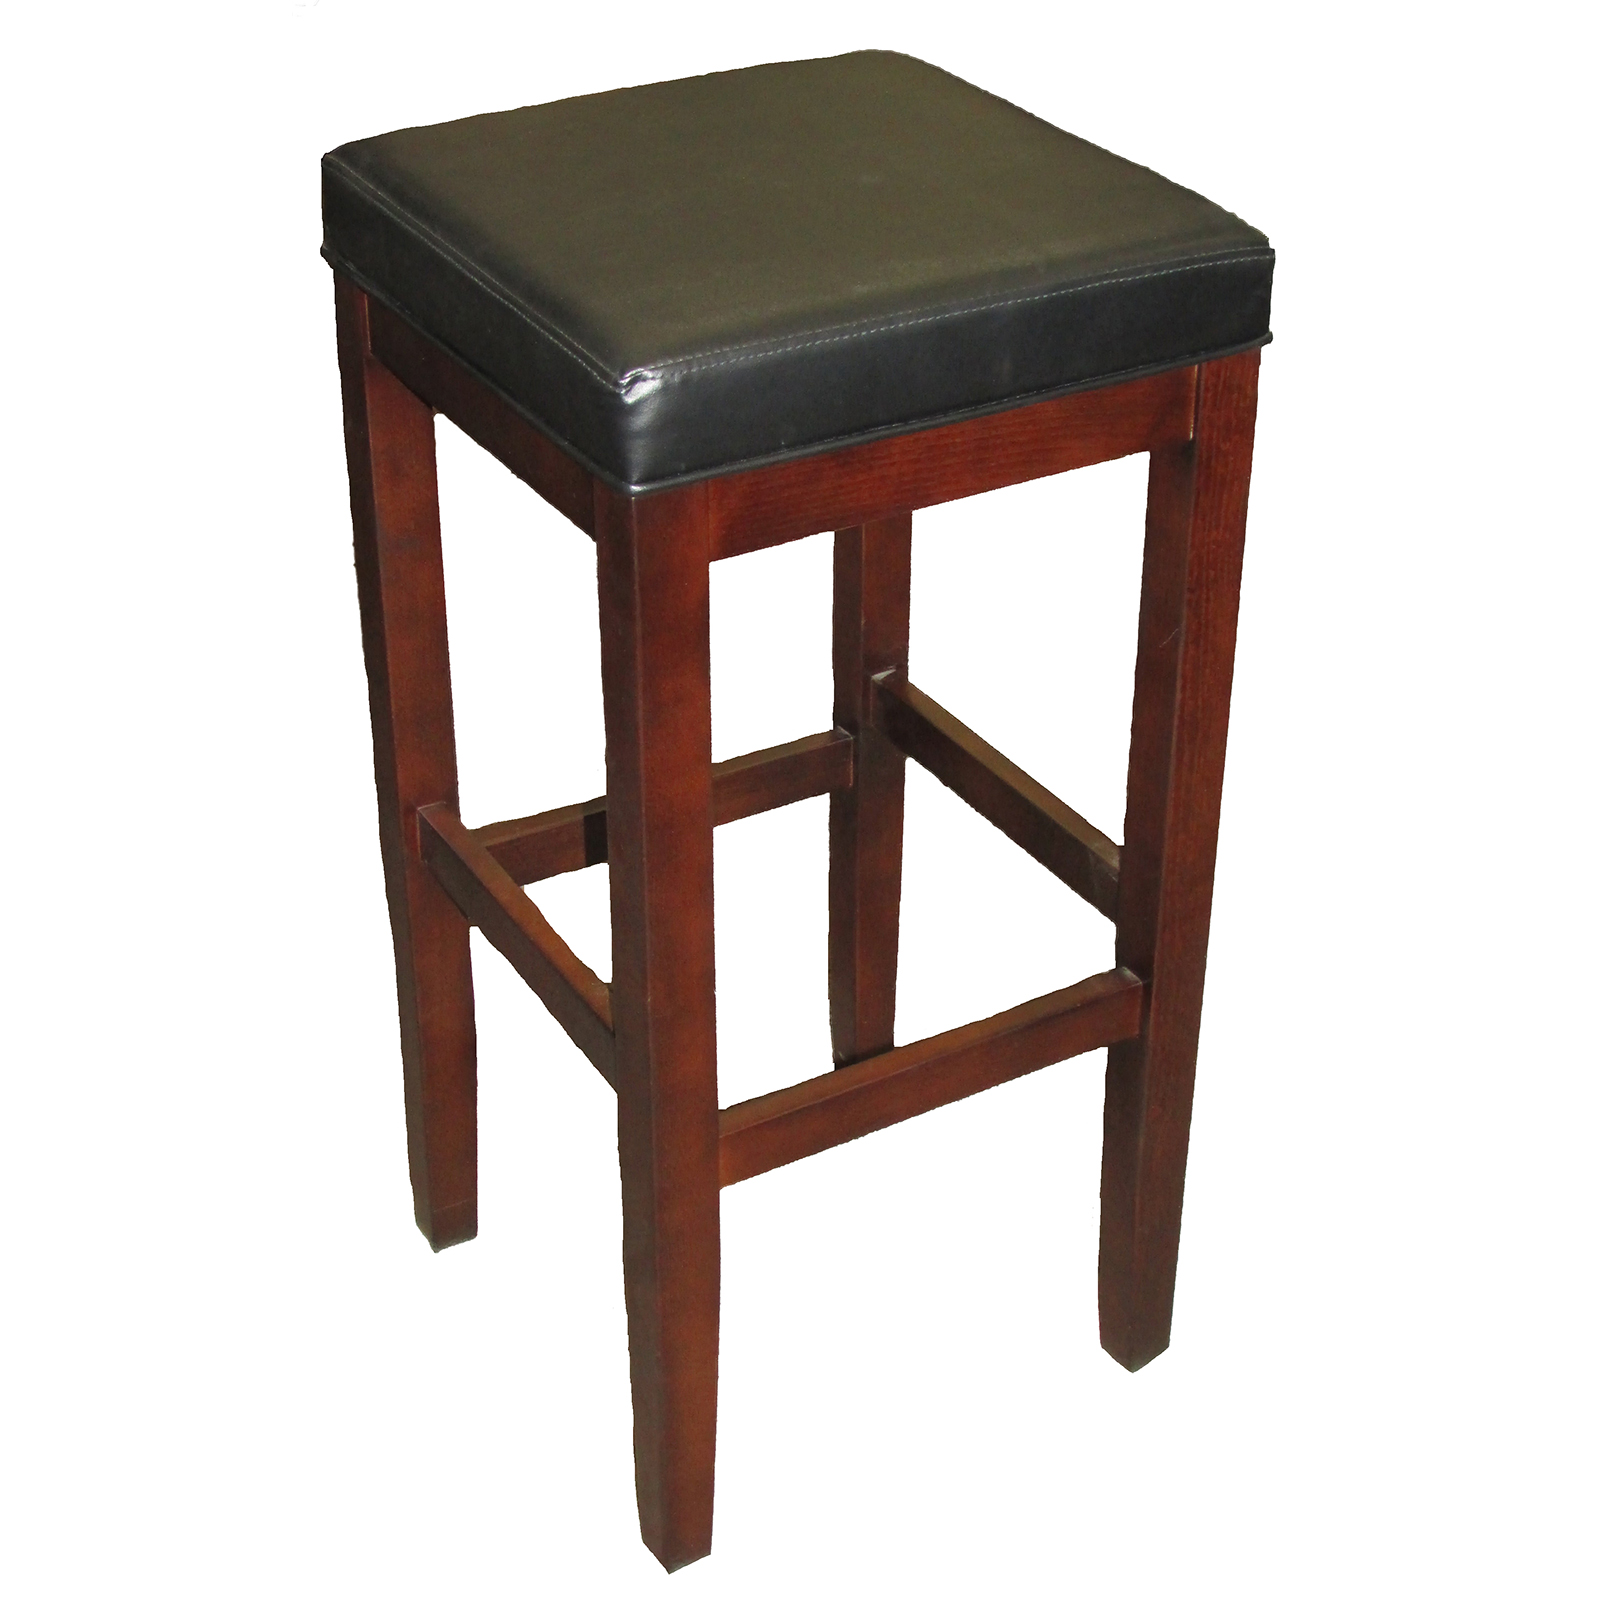 Oak Street WB122-BLK bar stool, indoor